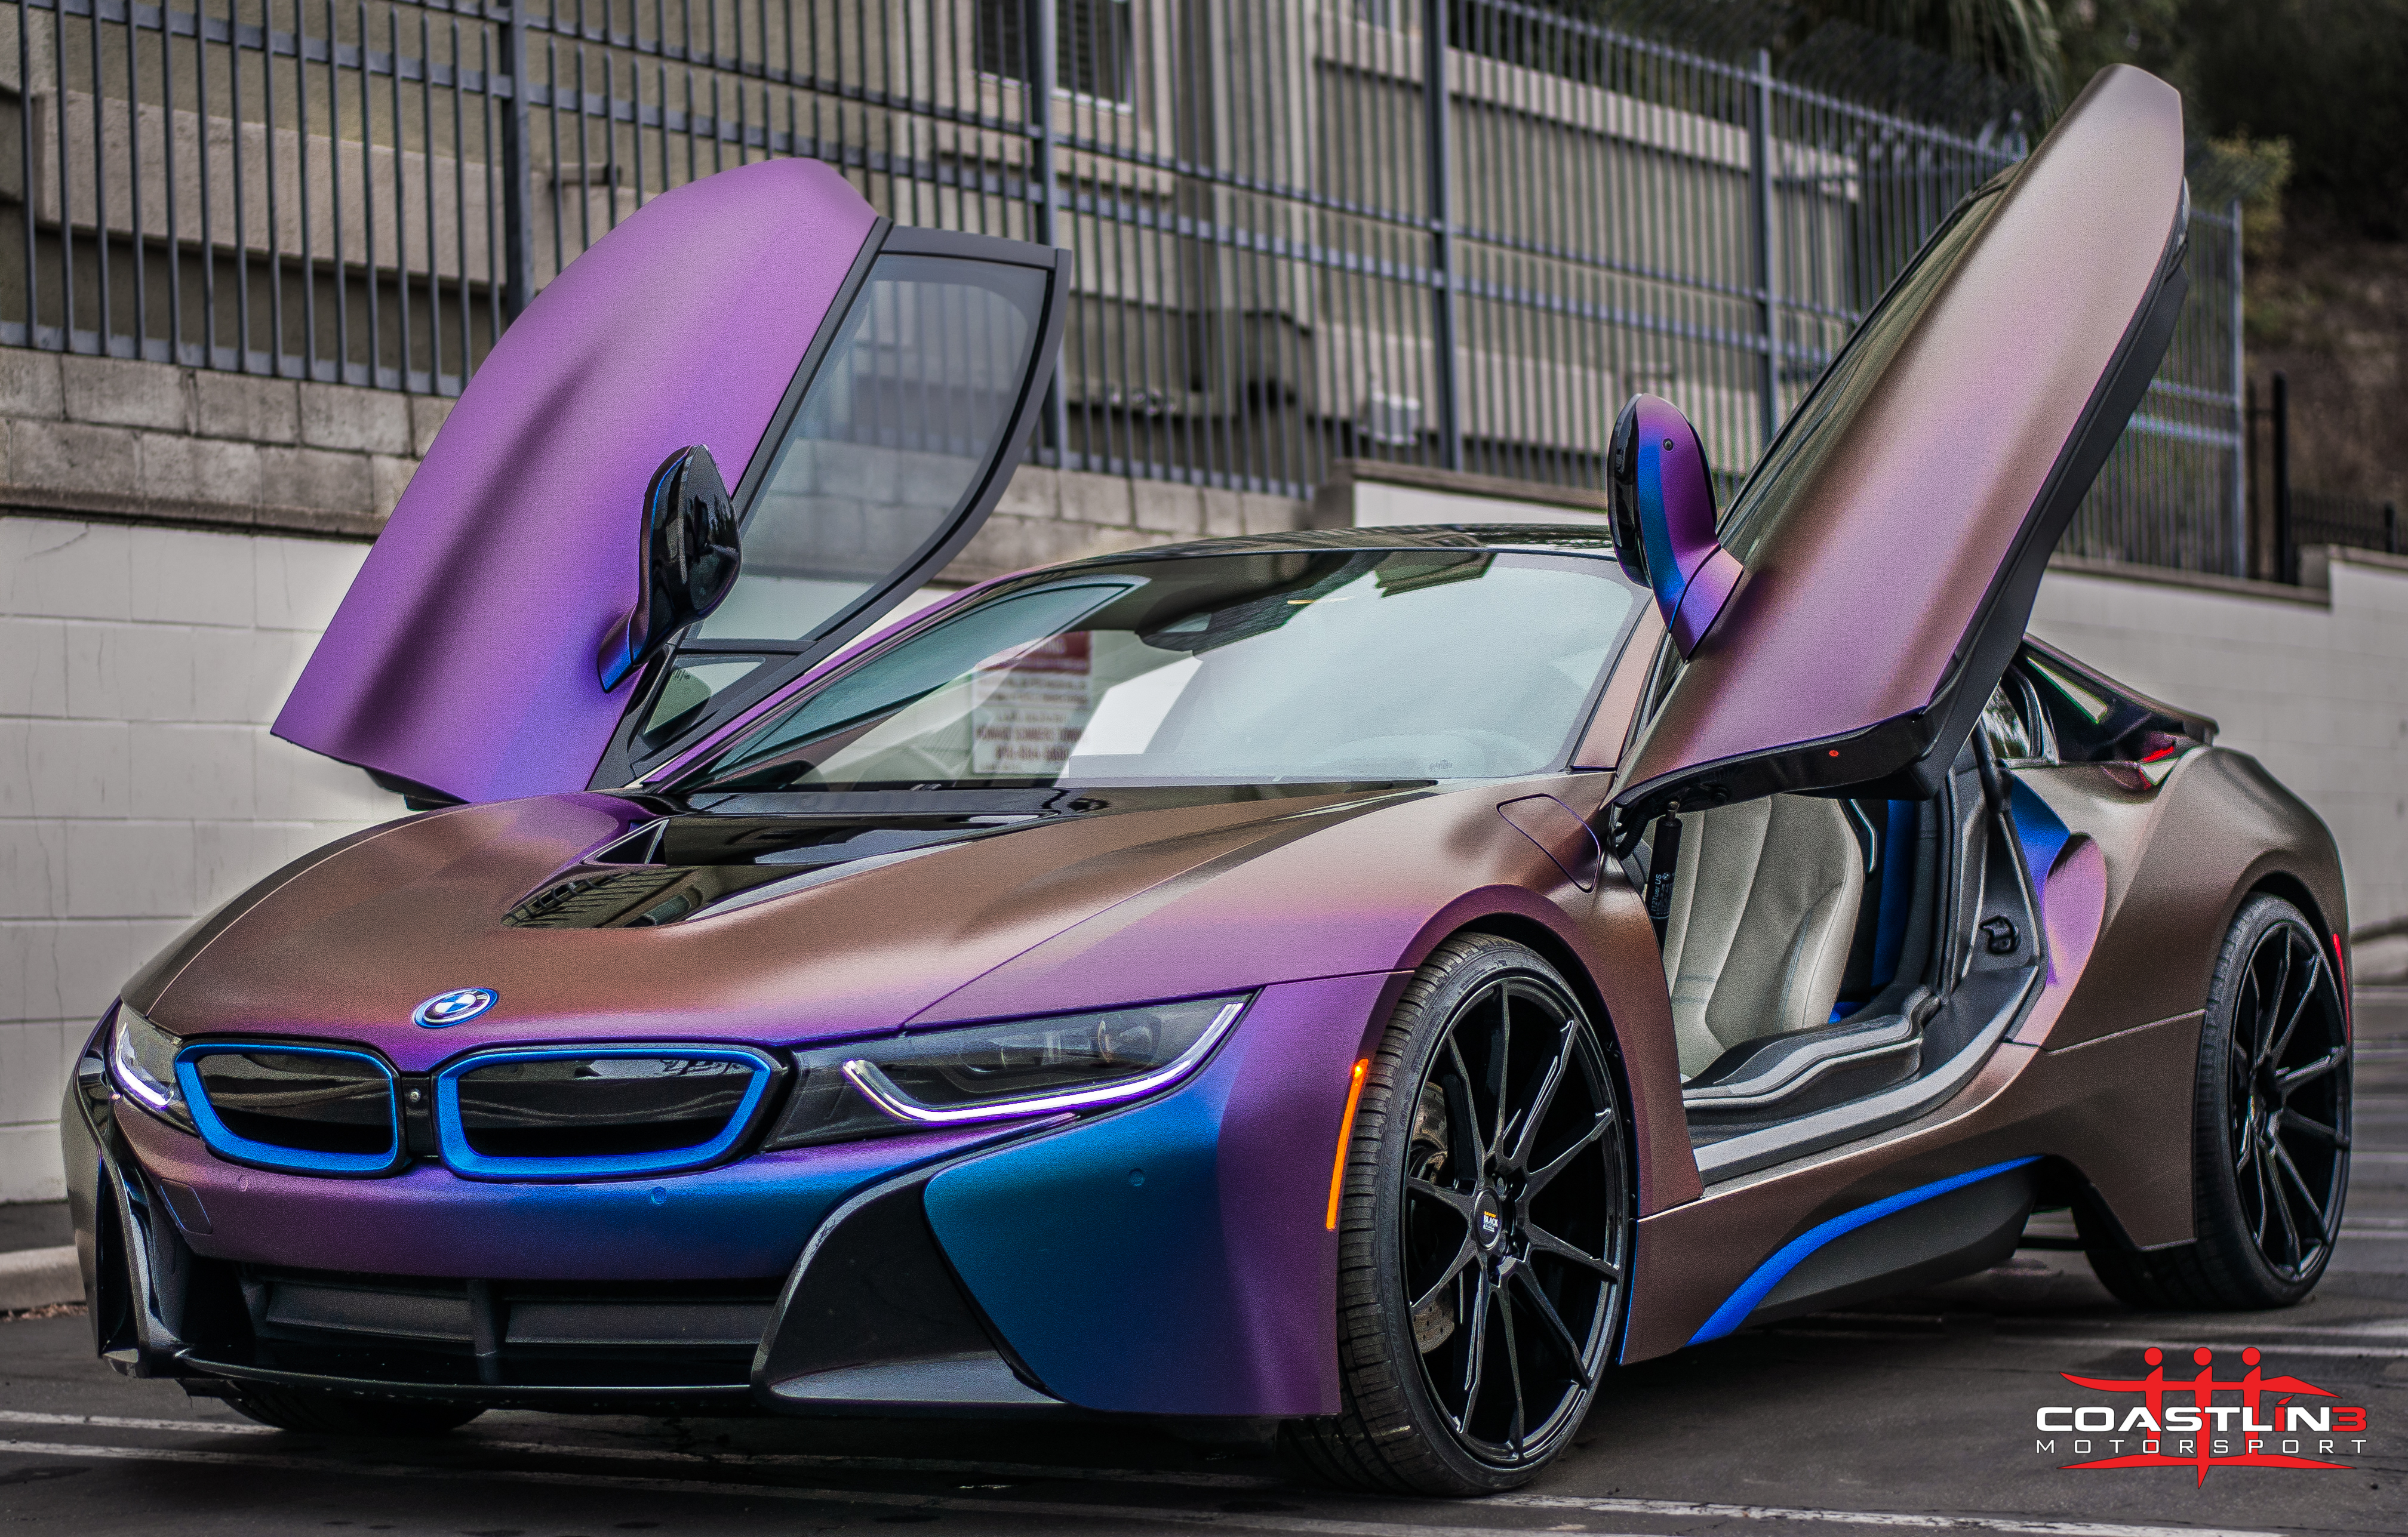 BMW i8 w/ Color Changing Vinyl Wrap and Wheels